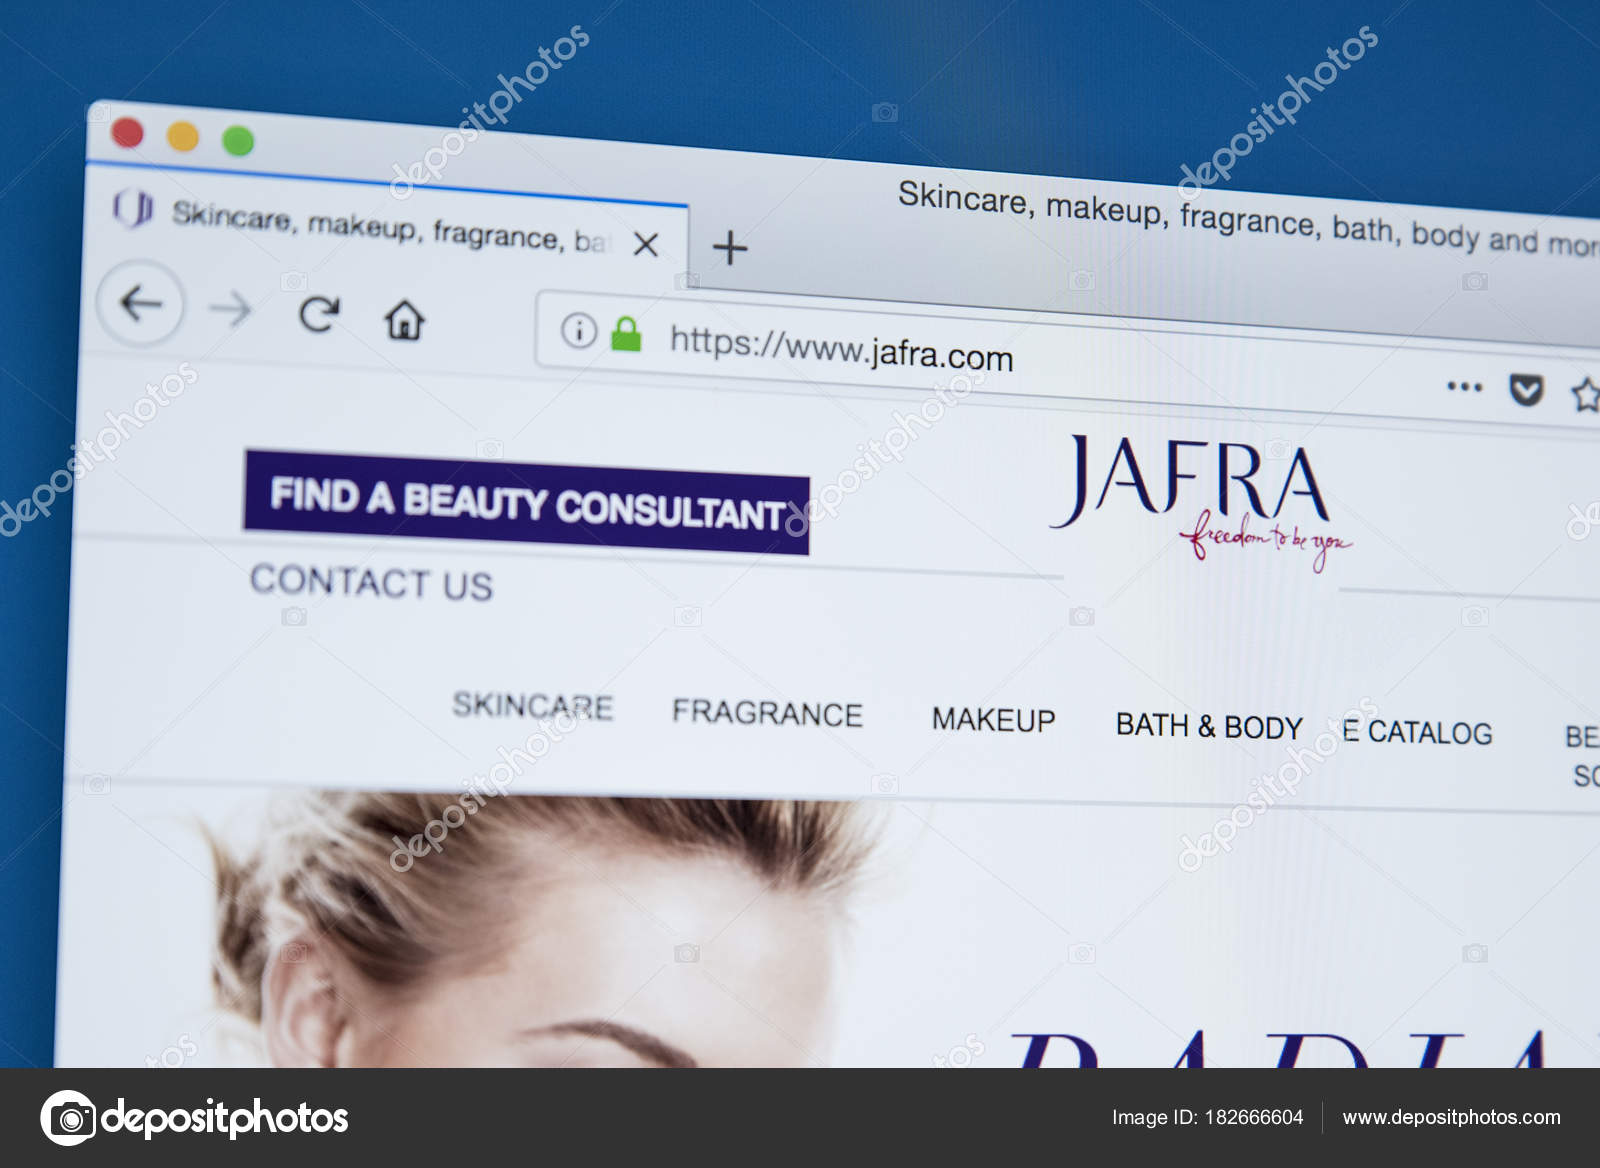 cosmetique jafra